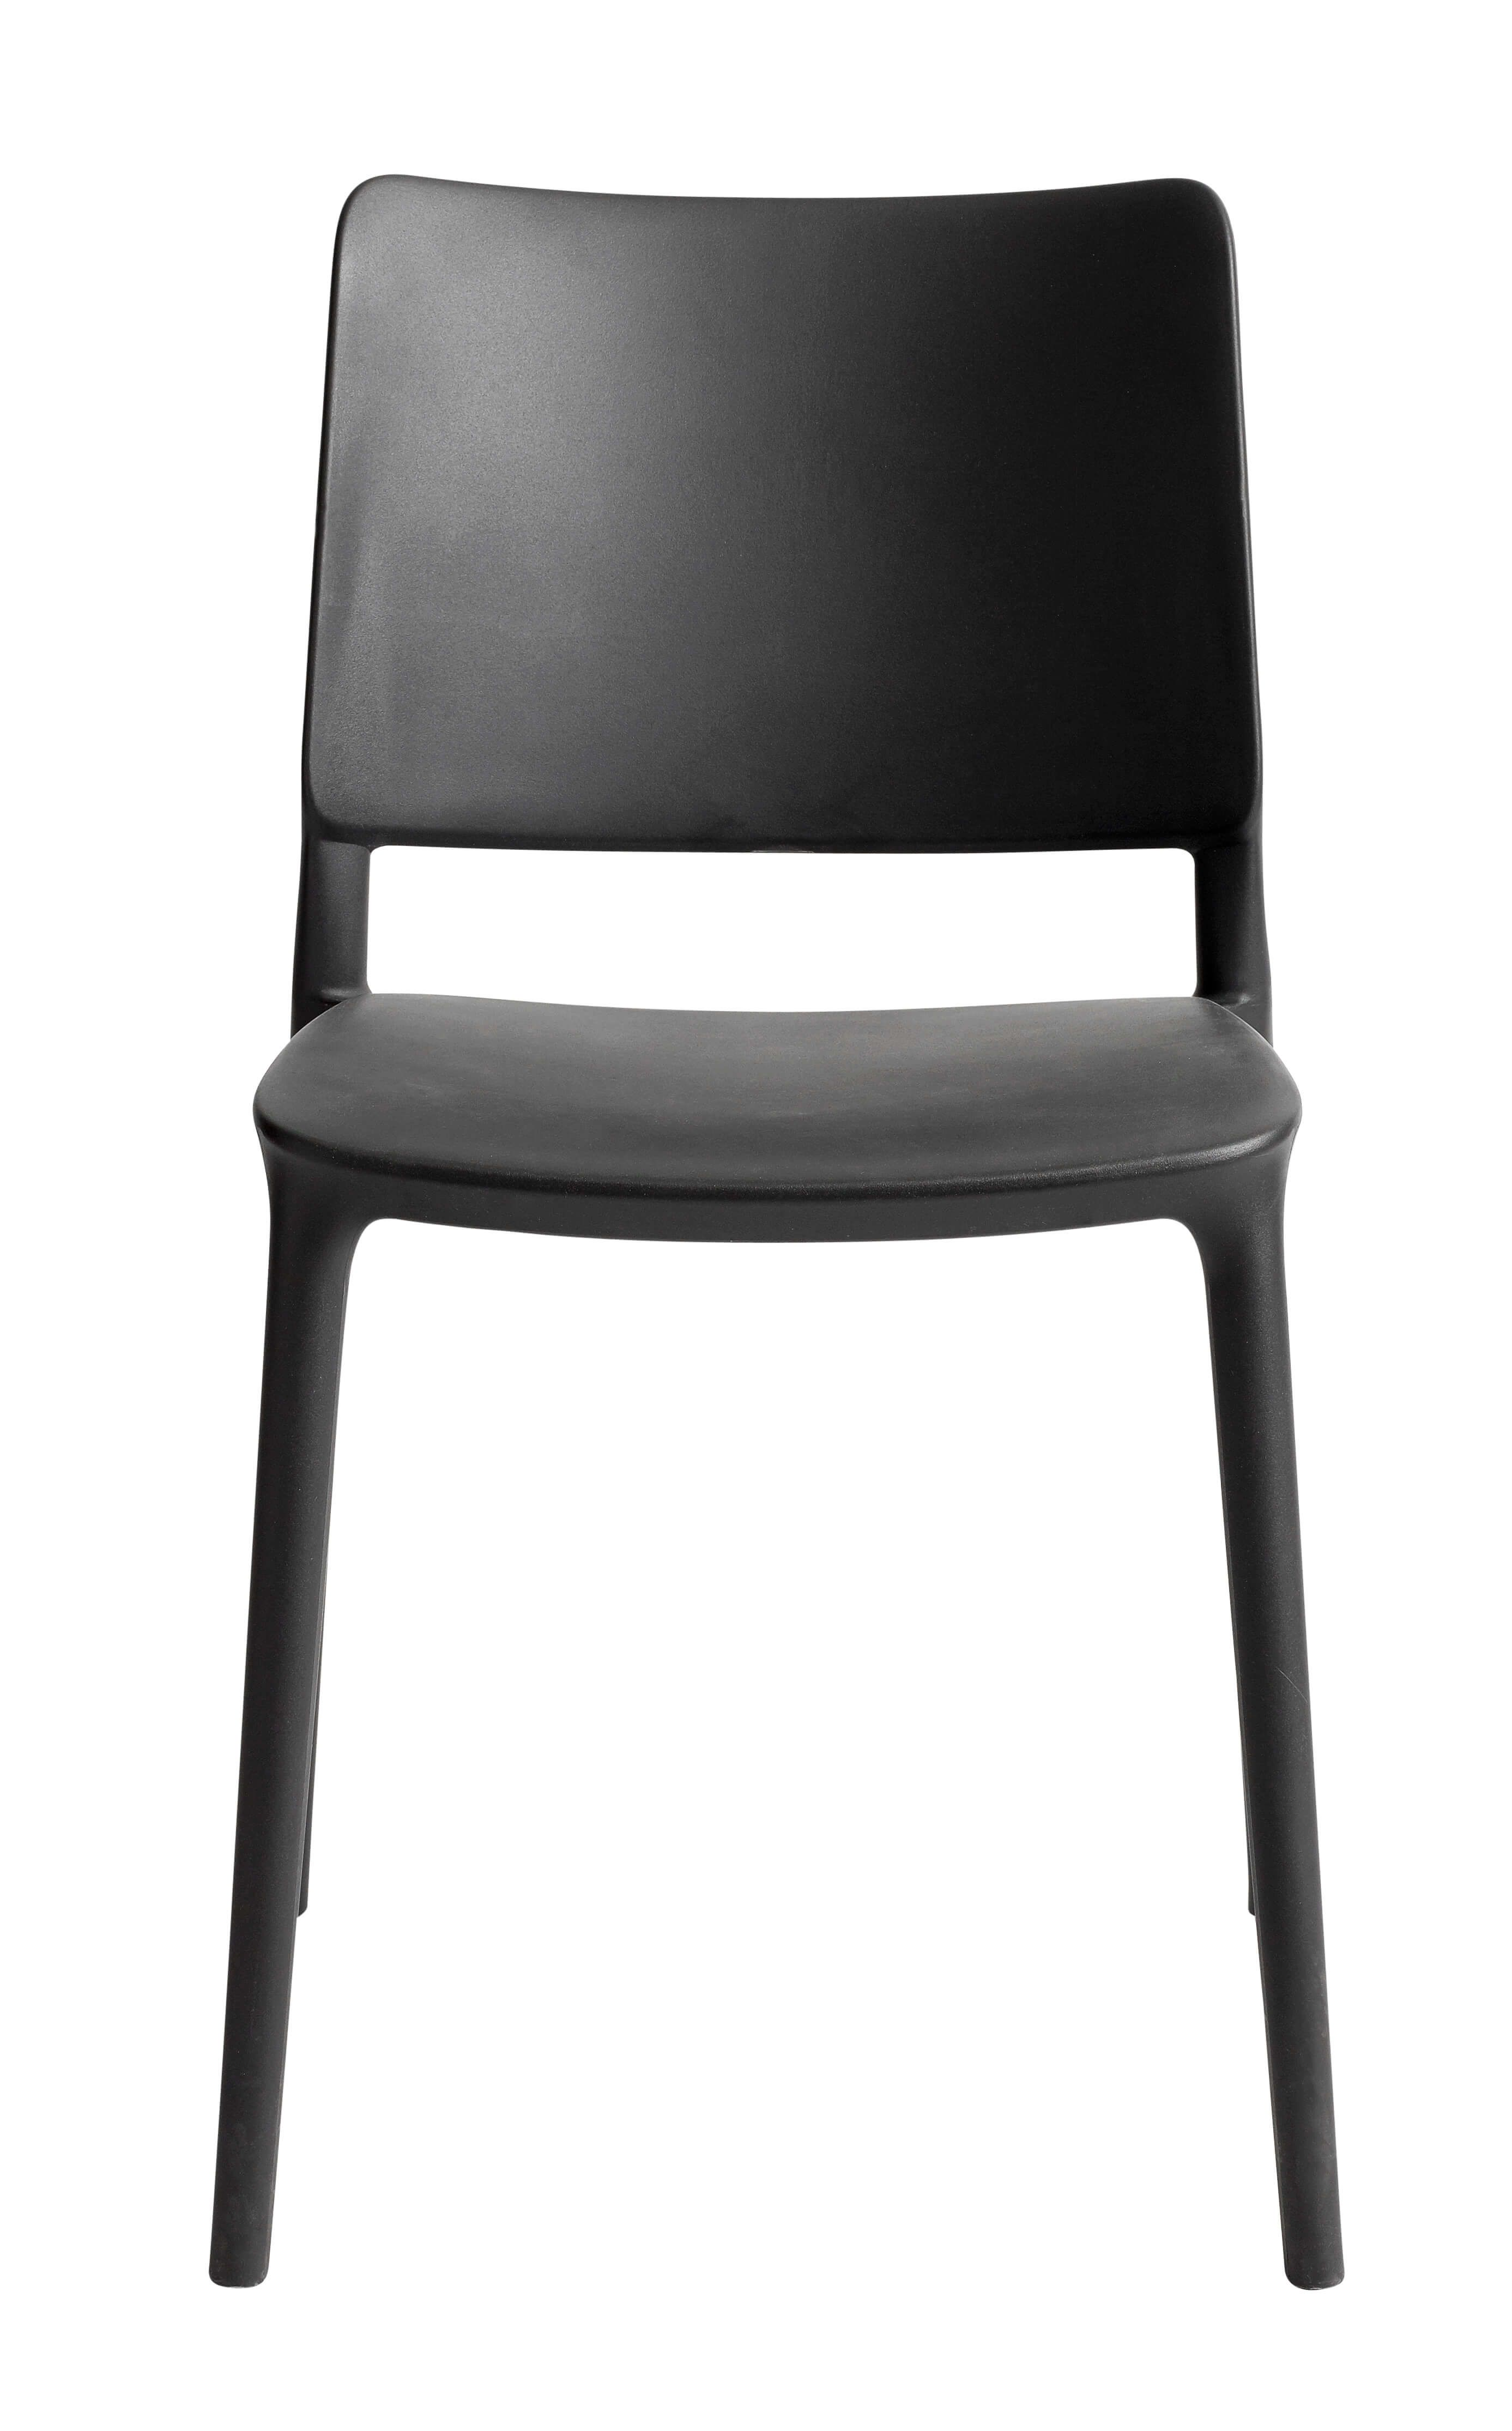 JoyS dining chair from Muubs is made in beautiful and